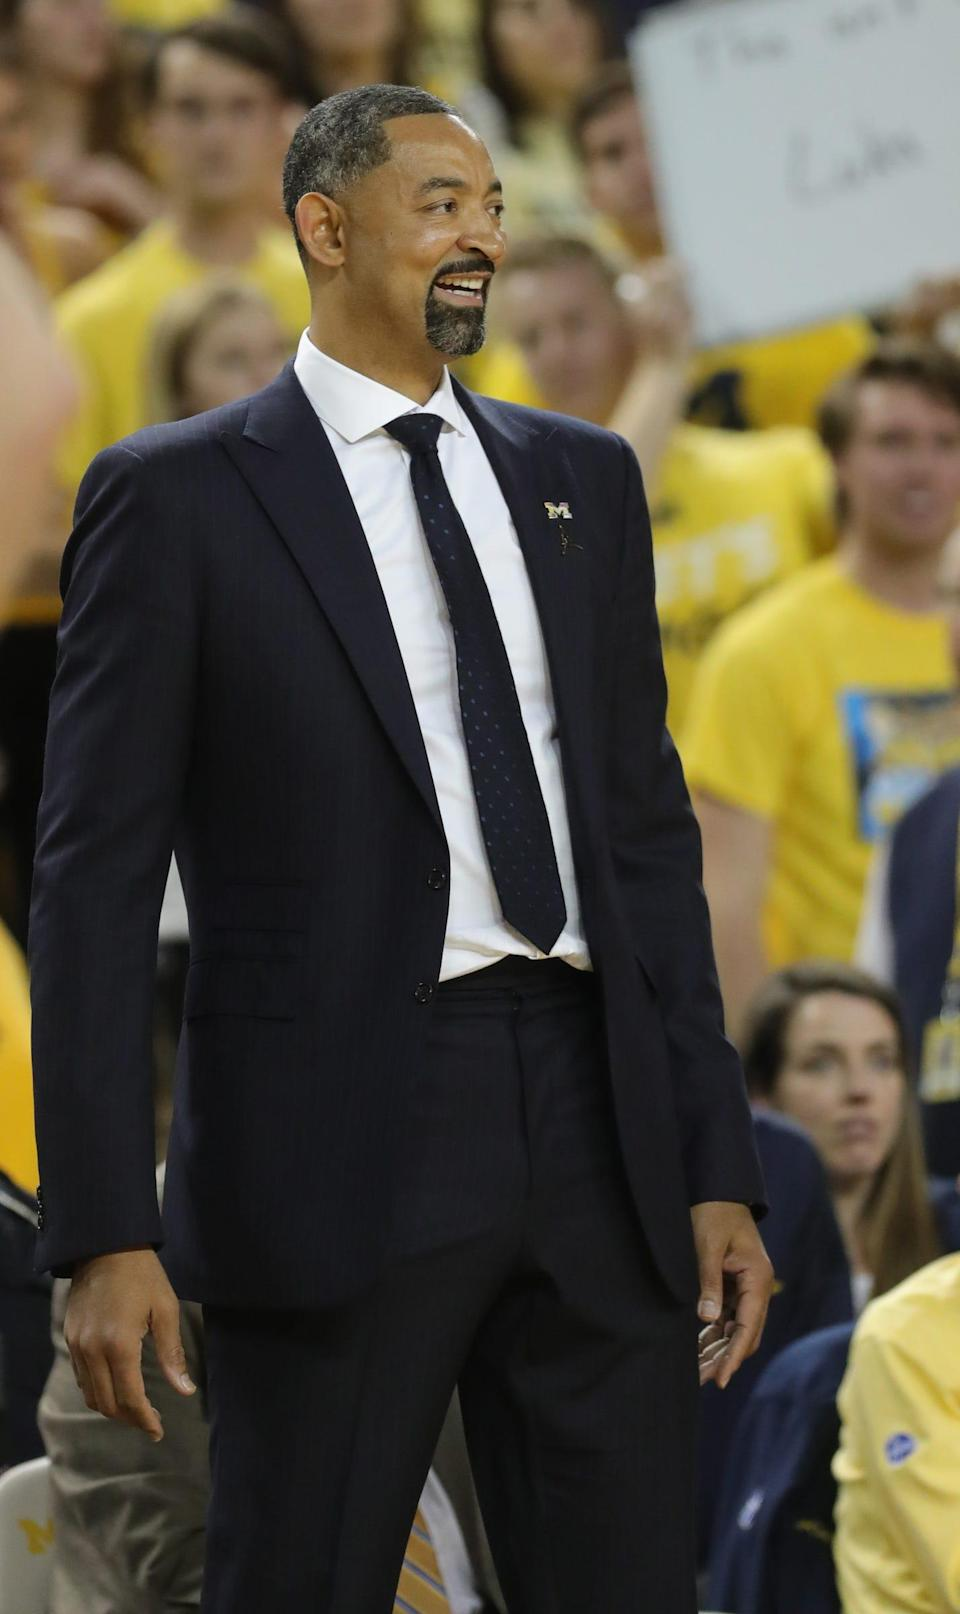 Juwan Howard during Michigan's 103-91 win over Iowa, Friday, Dec. 6, 2019 at the Crisler Center in Ann Arbor.